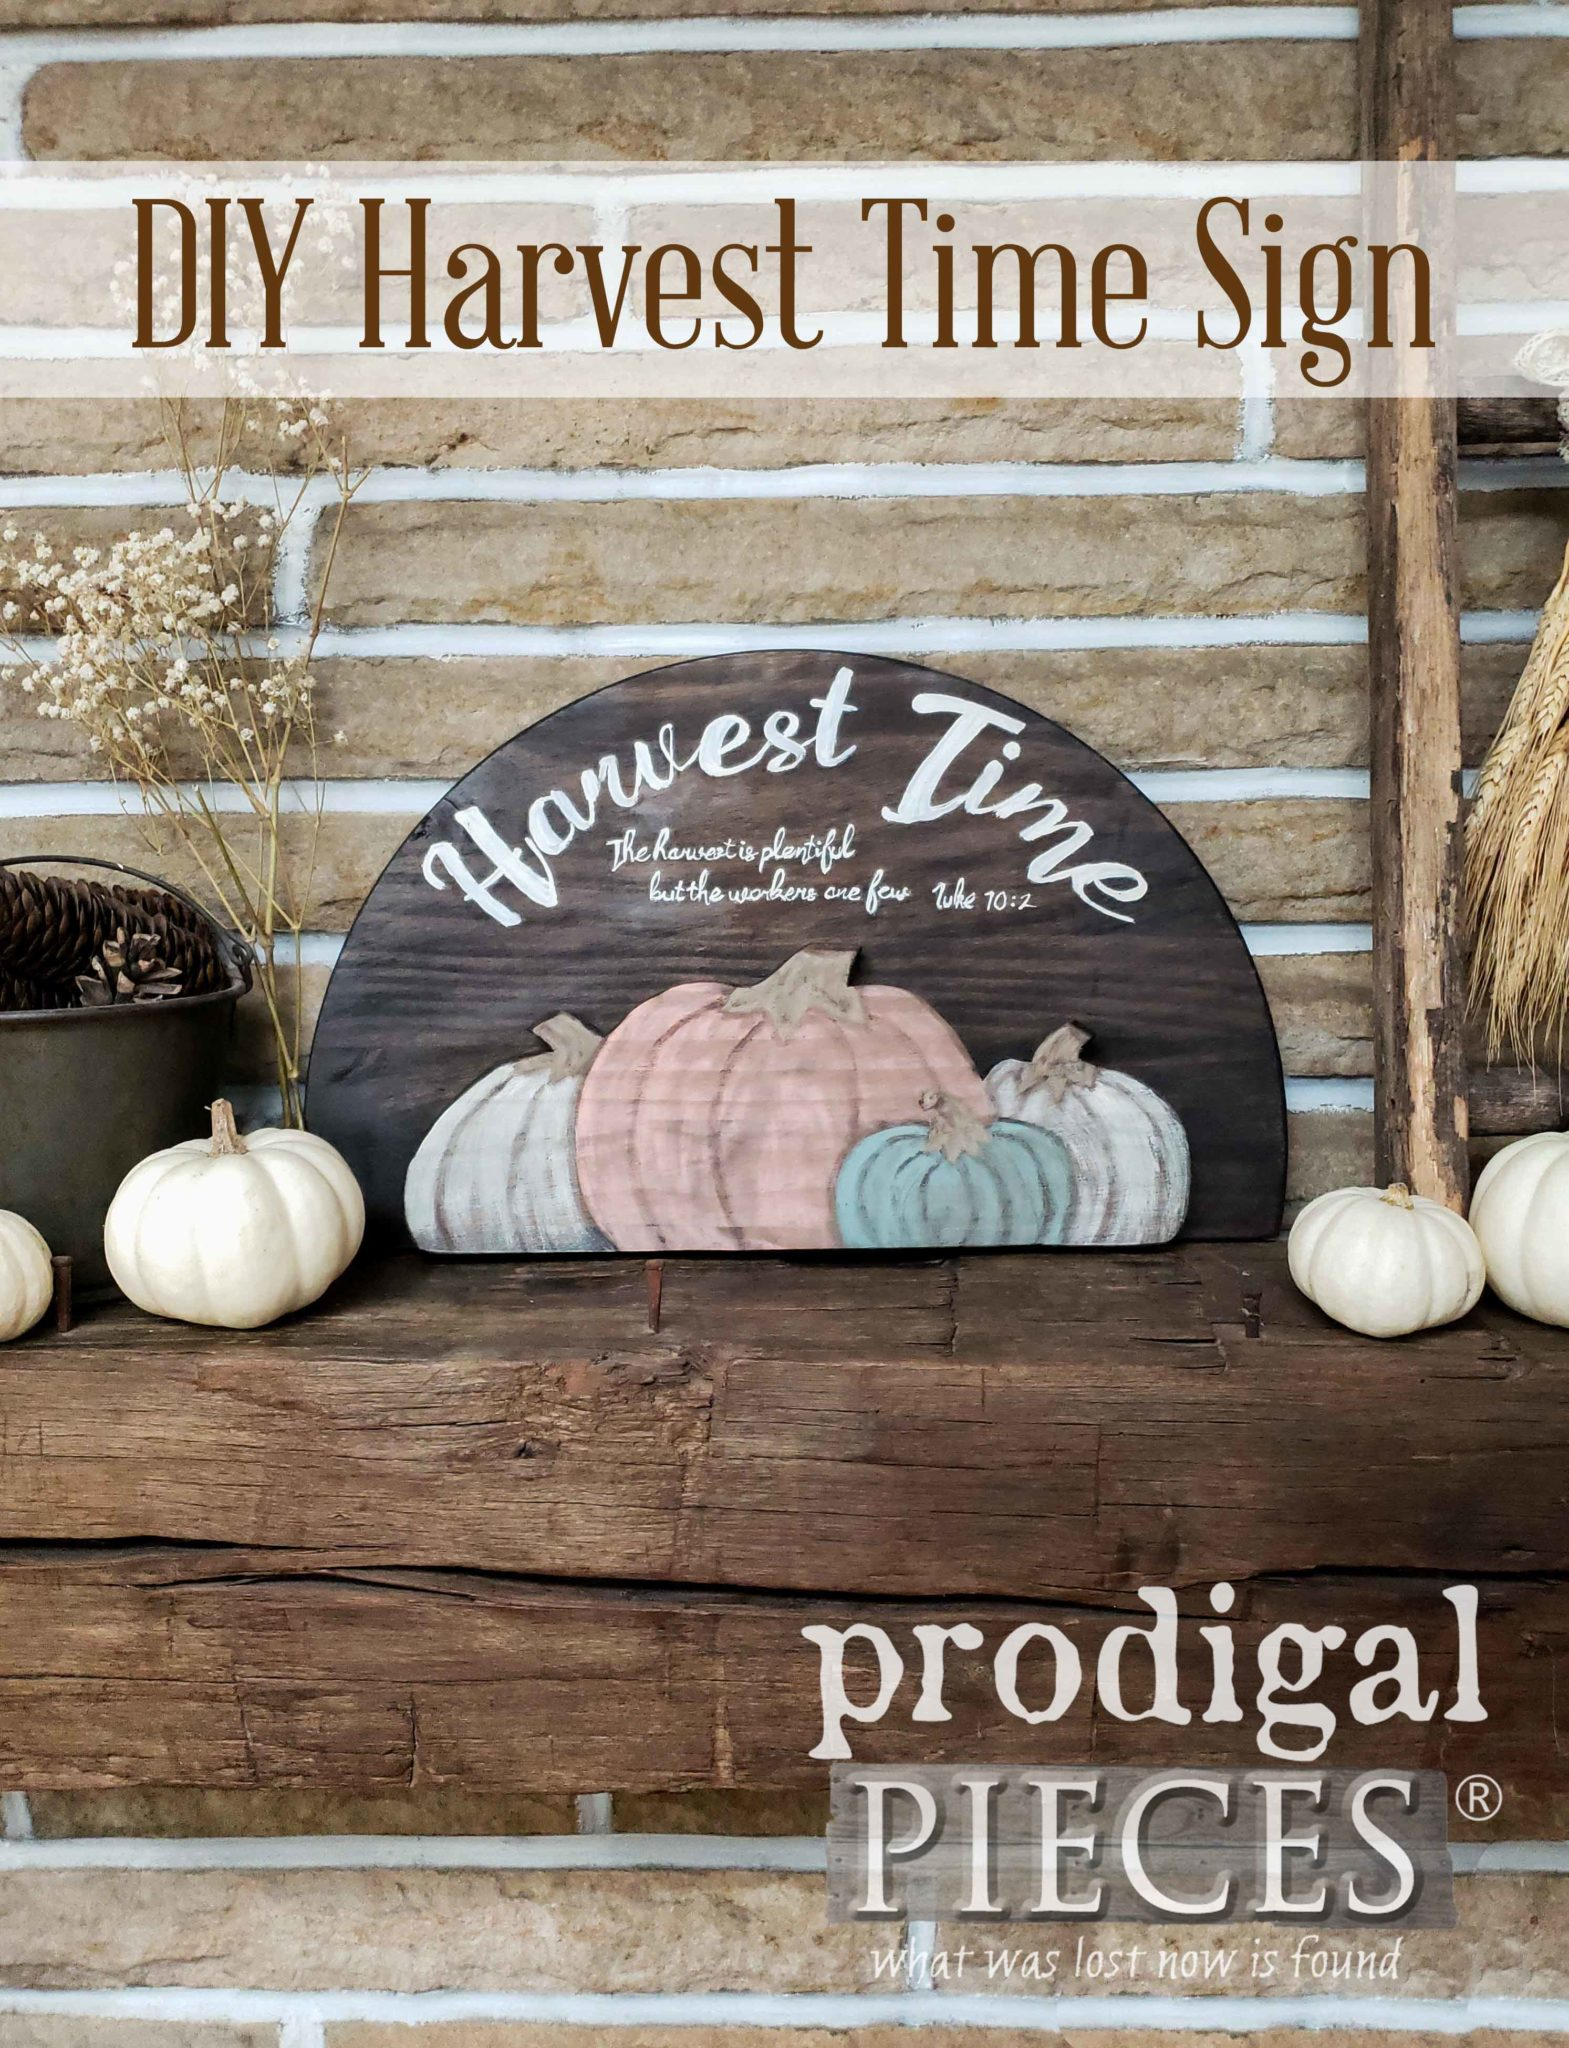 Come see how this DIY Harvest Time Sign was created using a broken wood round. Full DIY details by Larissa at Prodigal Pieces | prodigalpieces.com #prodigalpieces #handmade #home #homedecor #farmhouse